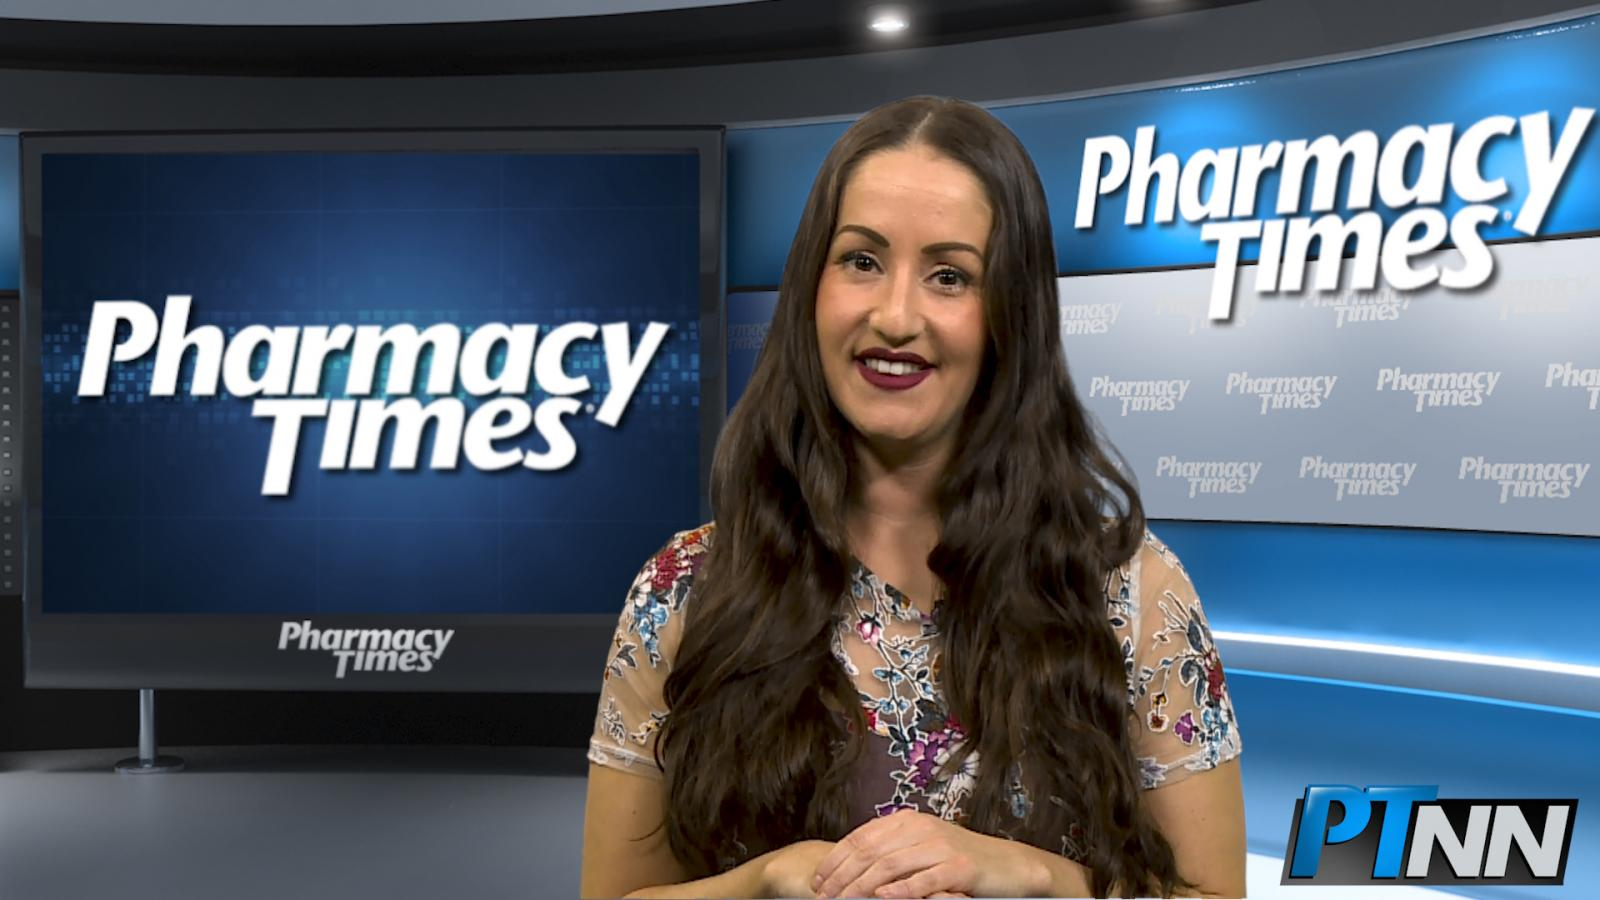 March 8 Pharmacy Week in Review: Walgreens Launches Pharmacy Service for Patients with Cancer, Price Reduction in Diabetes Medication